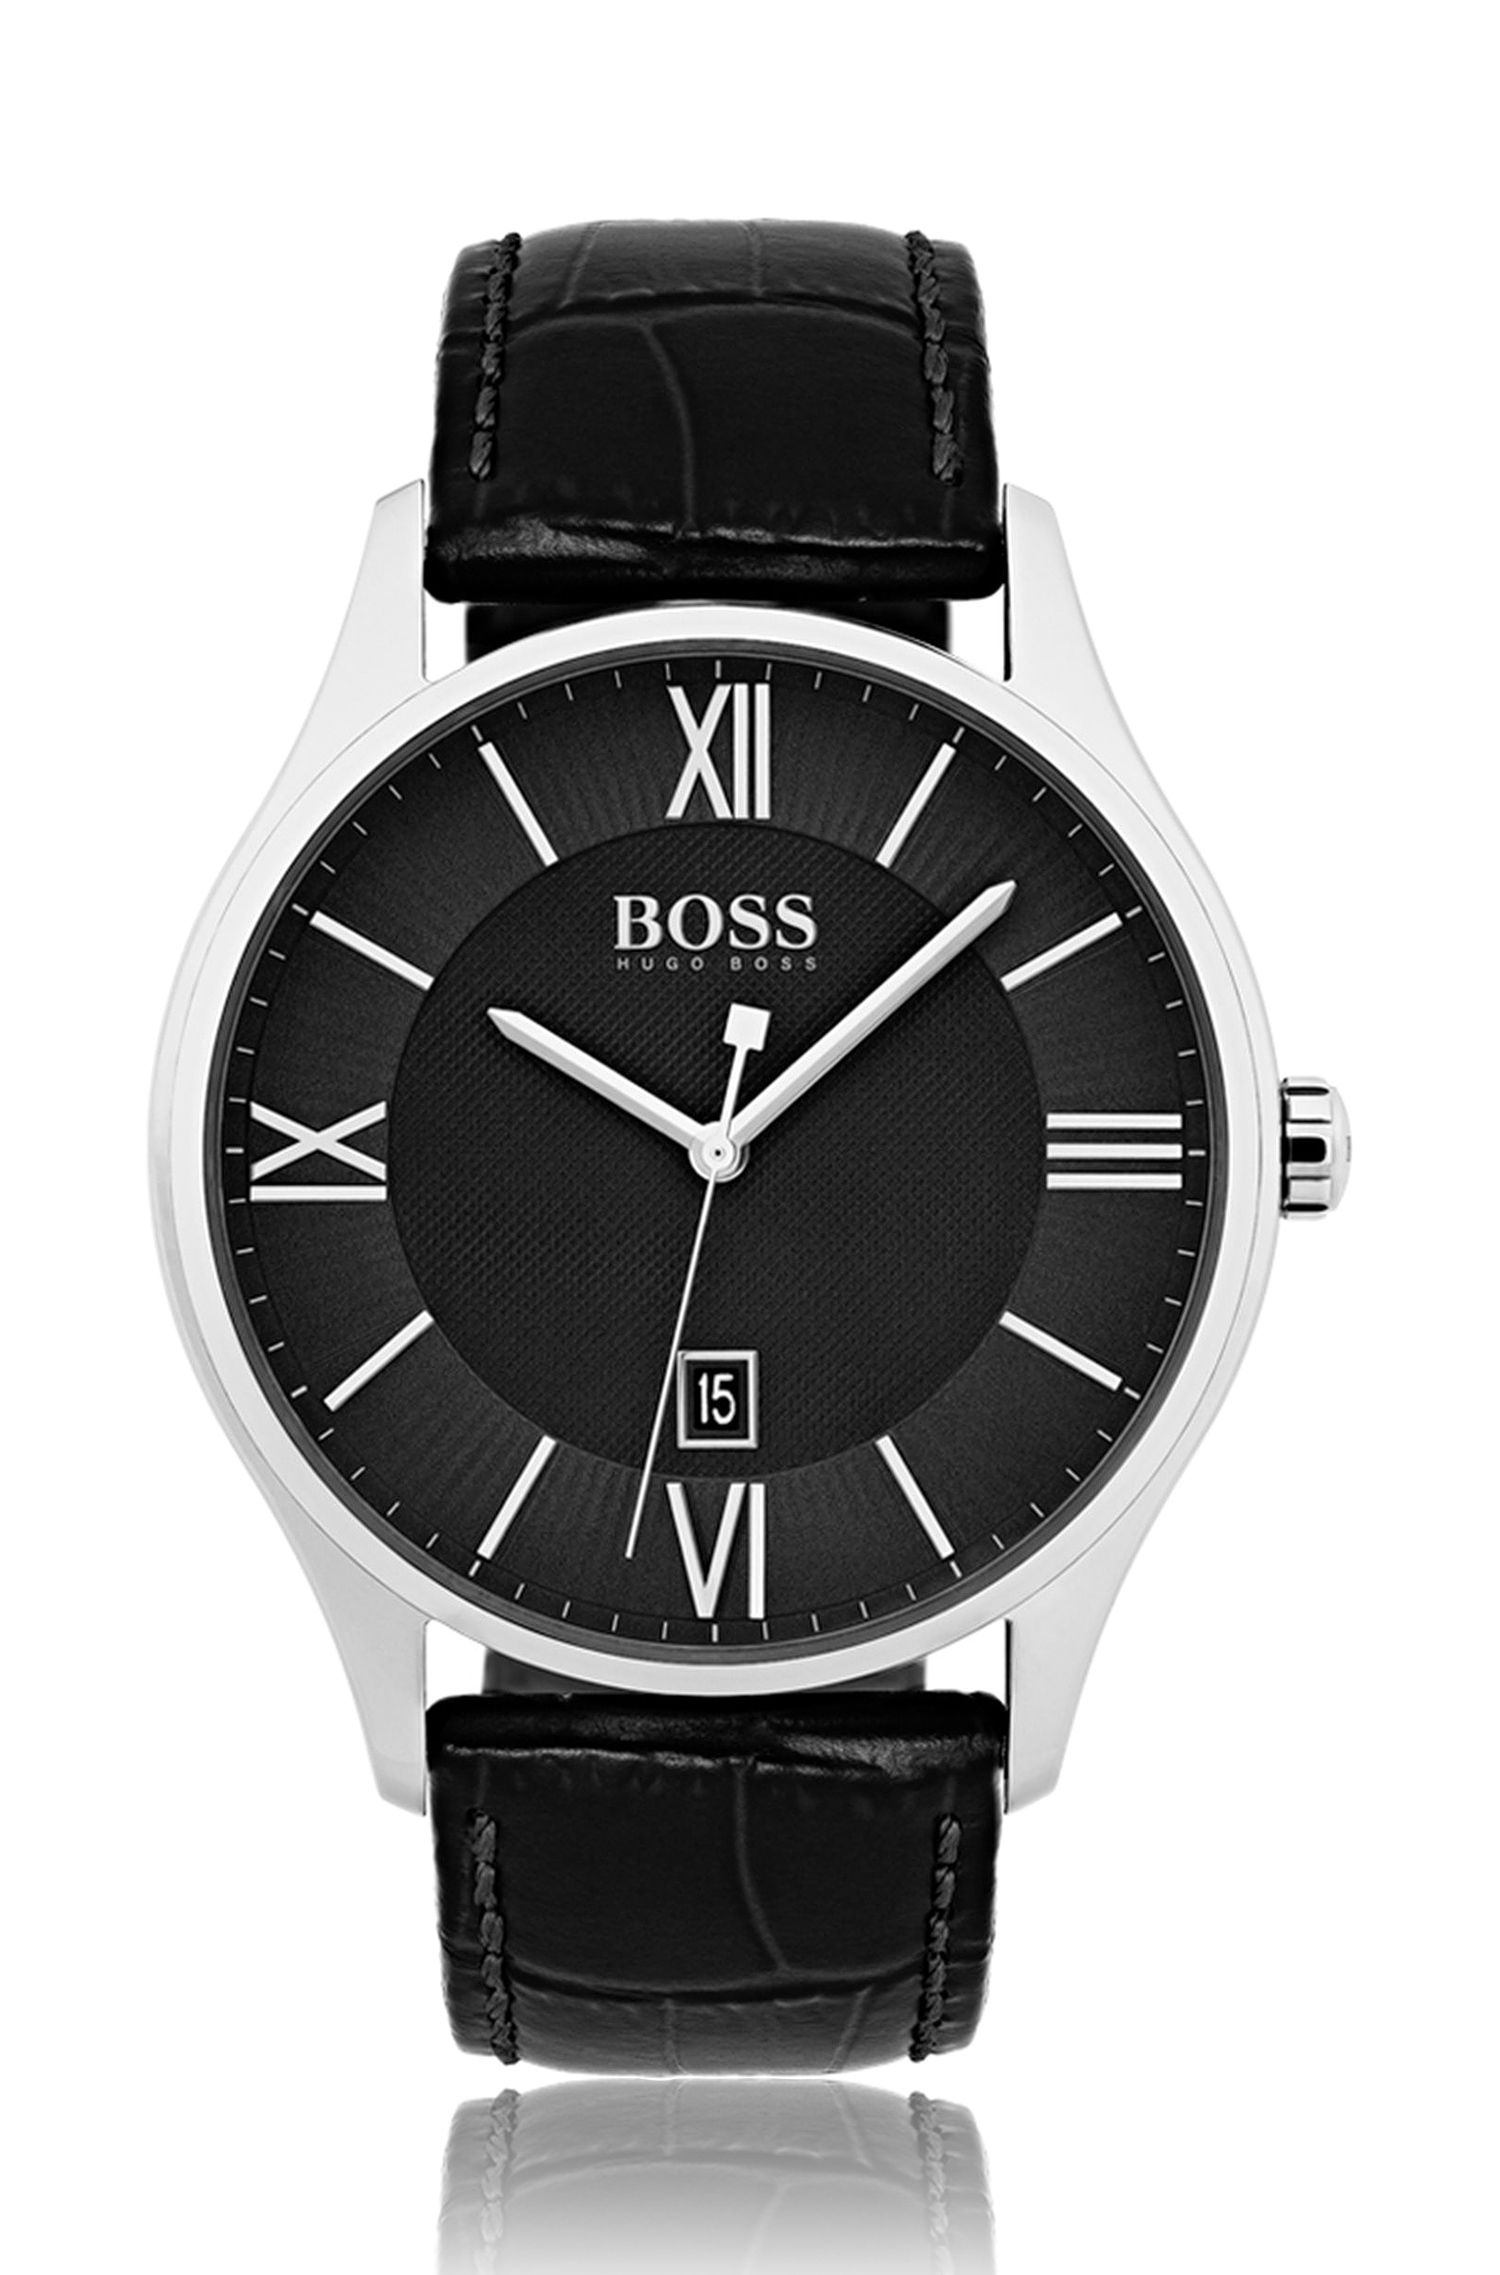 Three-hand watch with two-tier black dial and embossed leather strap